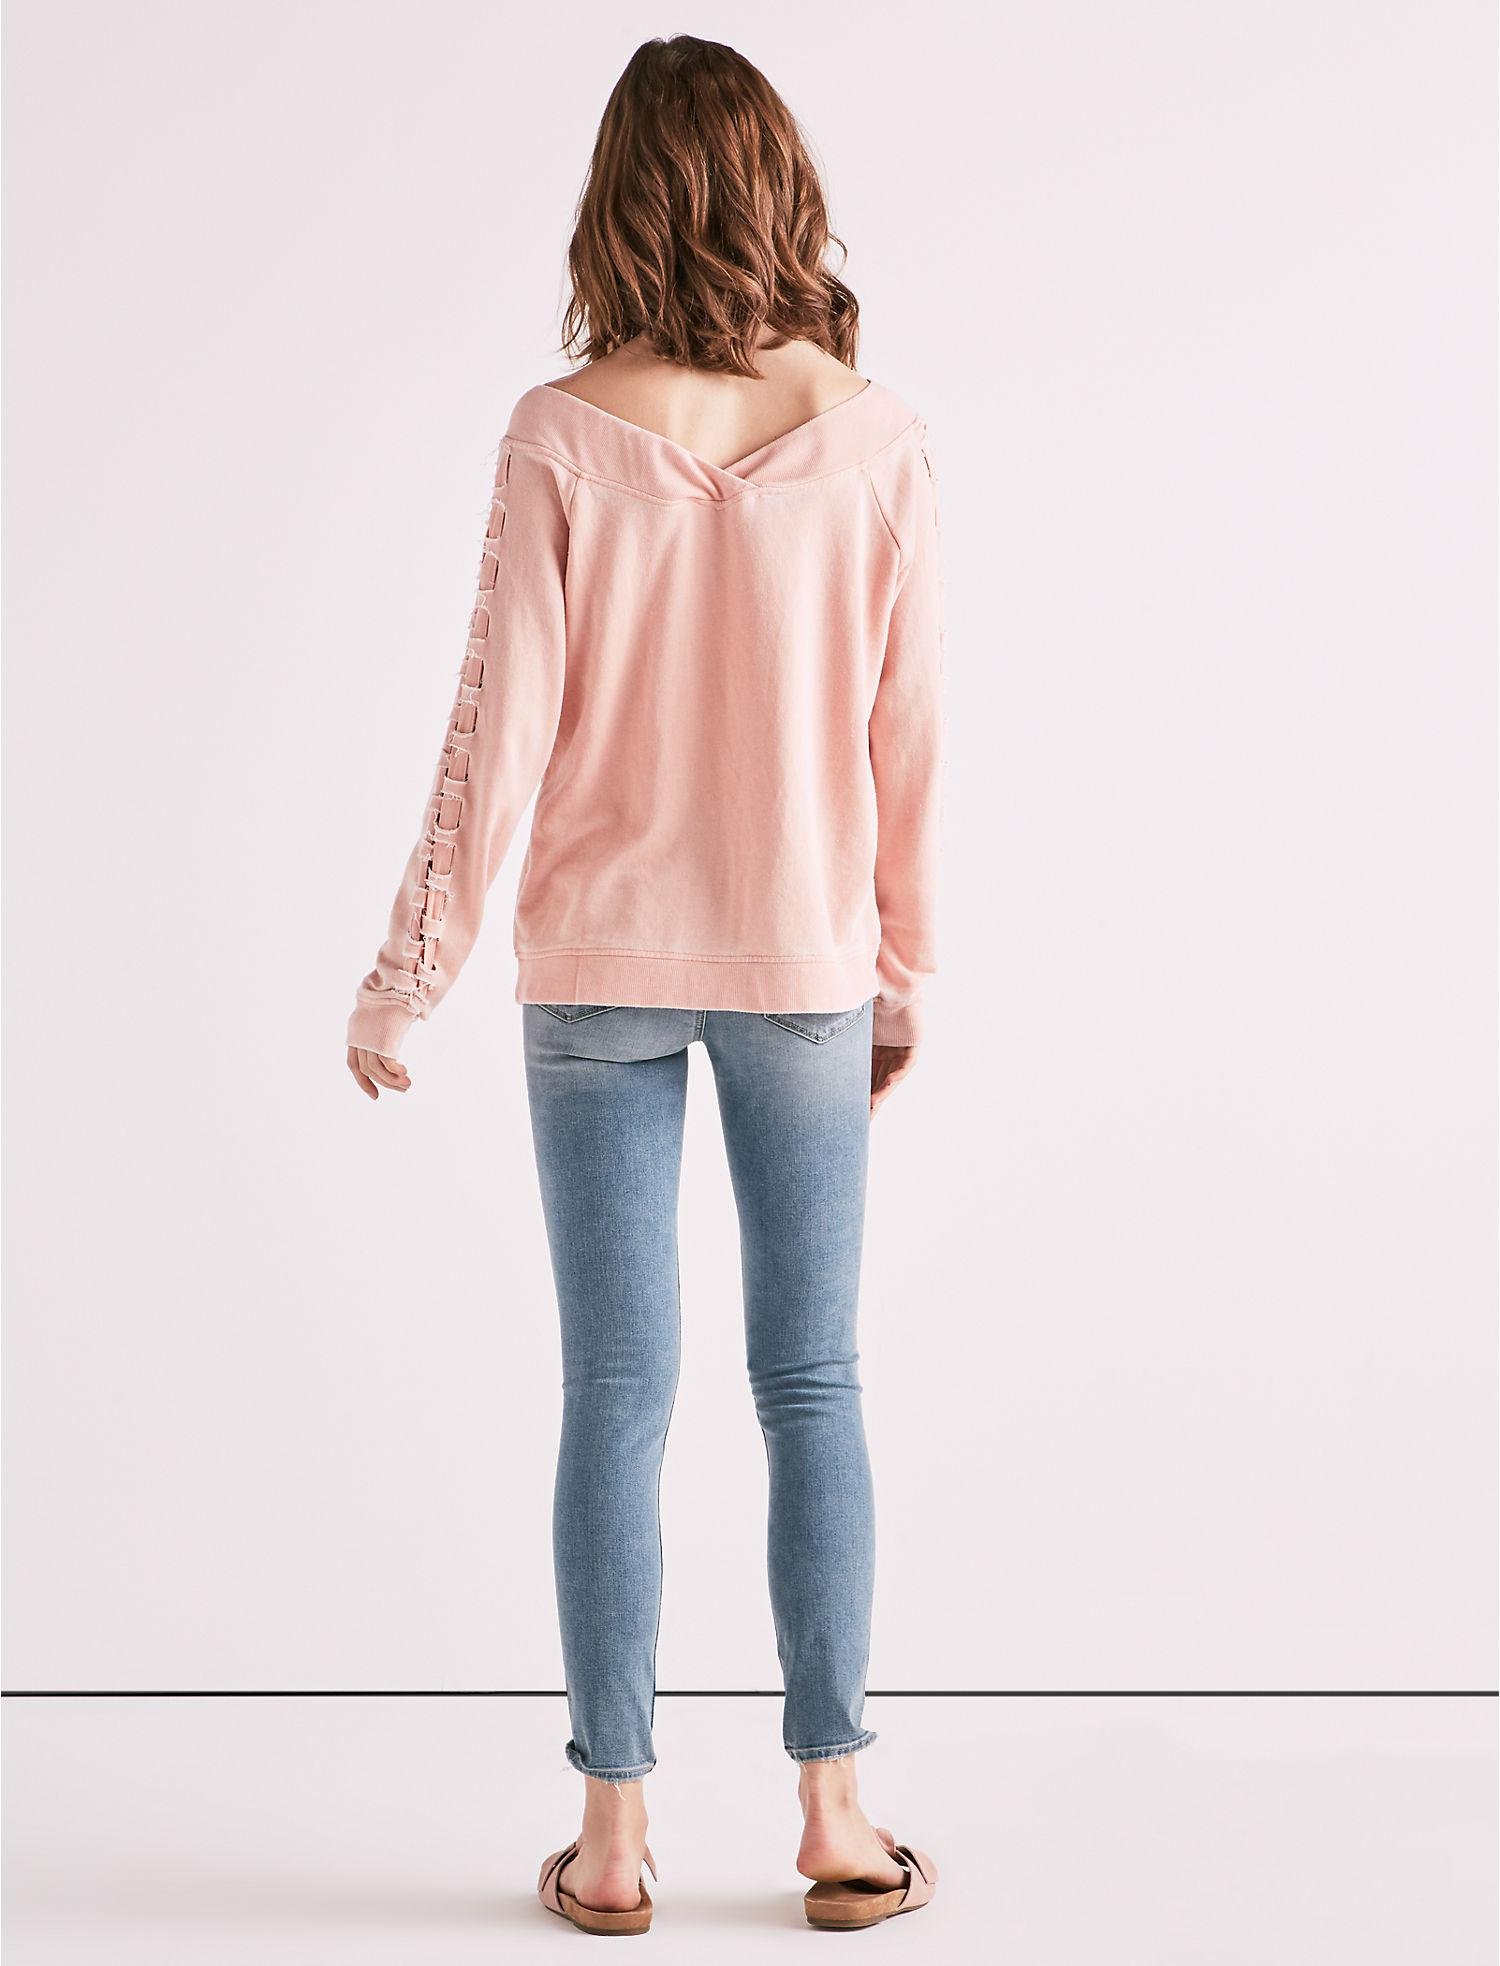 395ad6909cbf6a Lyst - Lucky Brand Lace Up Off The Shoulder Sweatshirt in Pink